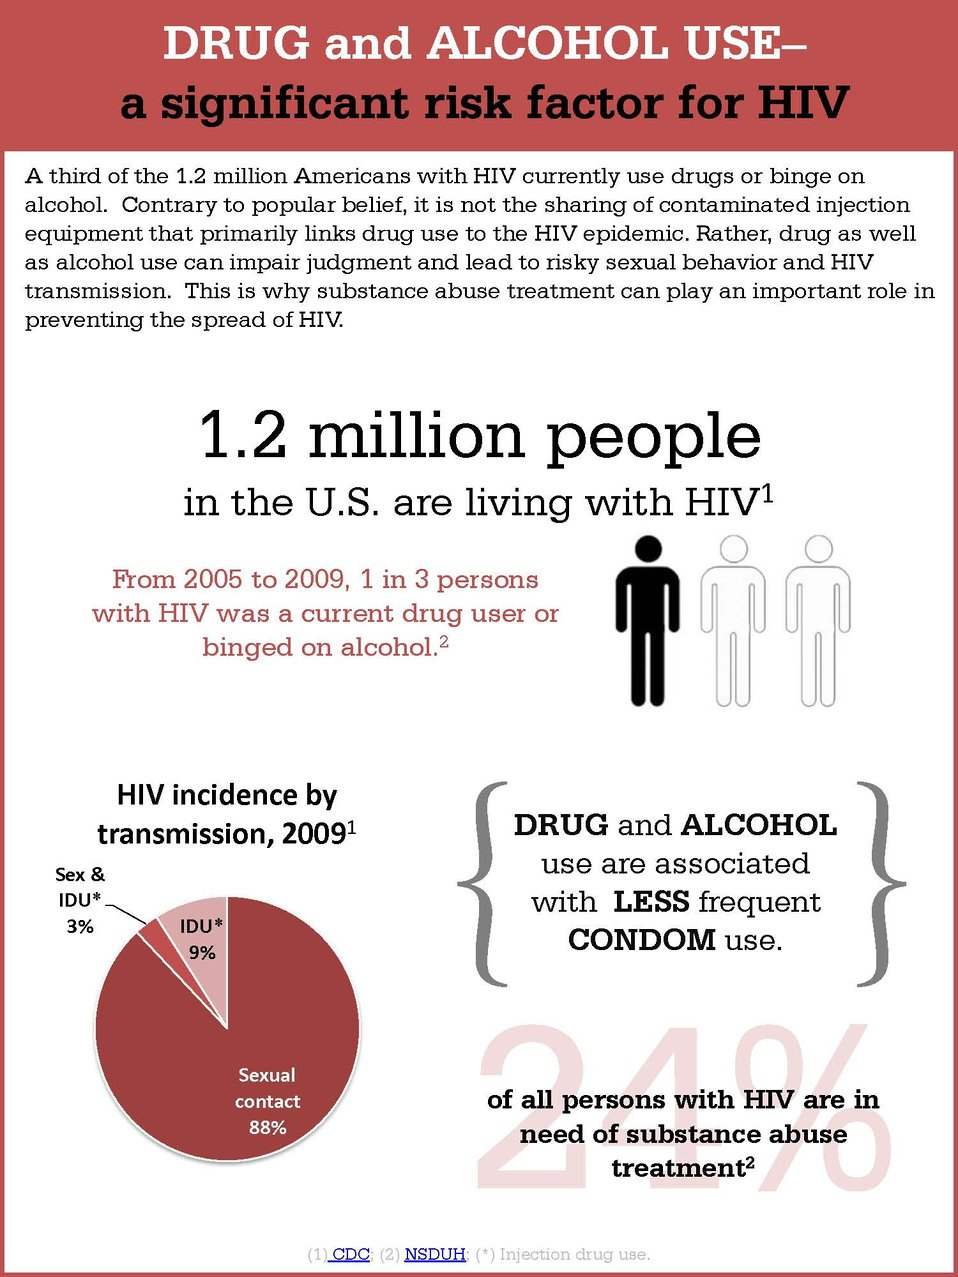 Drug and Alcohol Use - A Significant Risk Factor for HIV